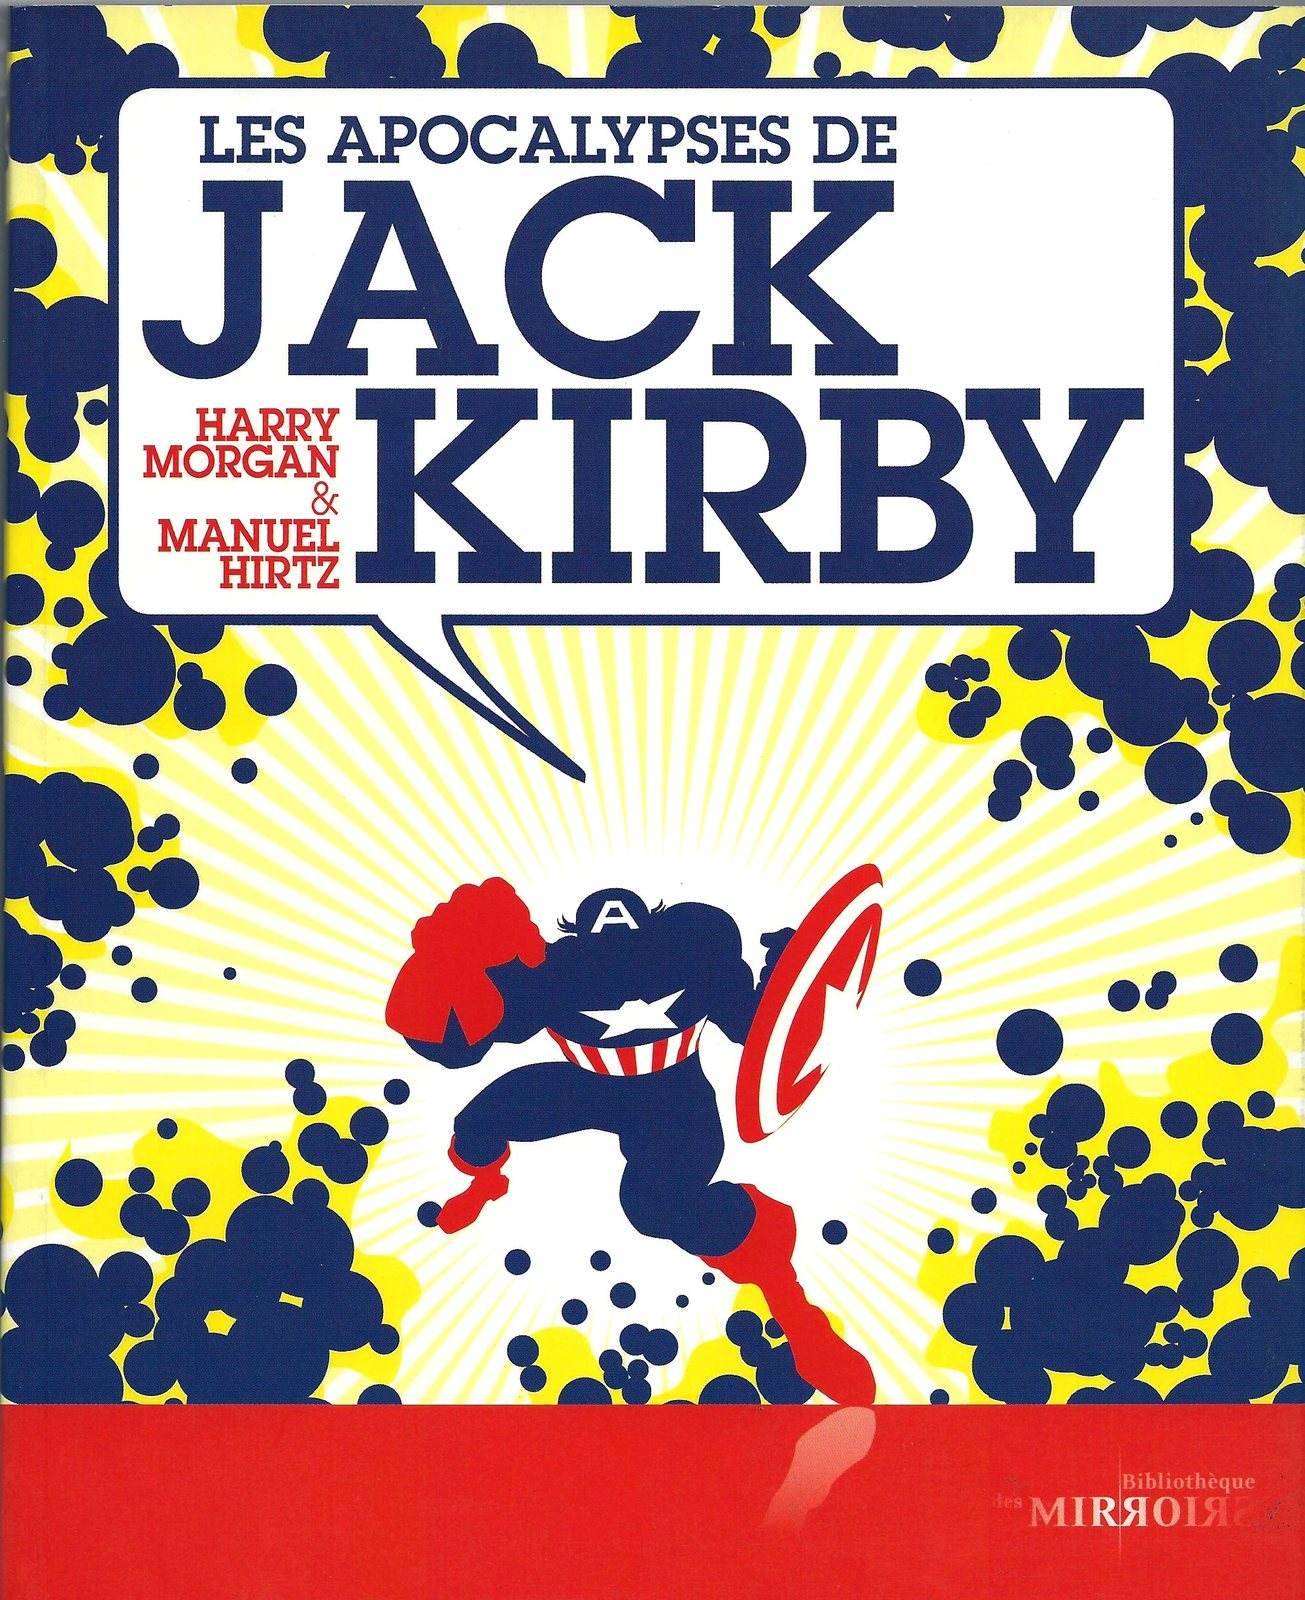 Primary image for Les Apocalypses de Jack Kirby Harry Morgan Manuel Hirtz French Book - 2009